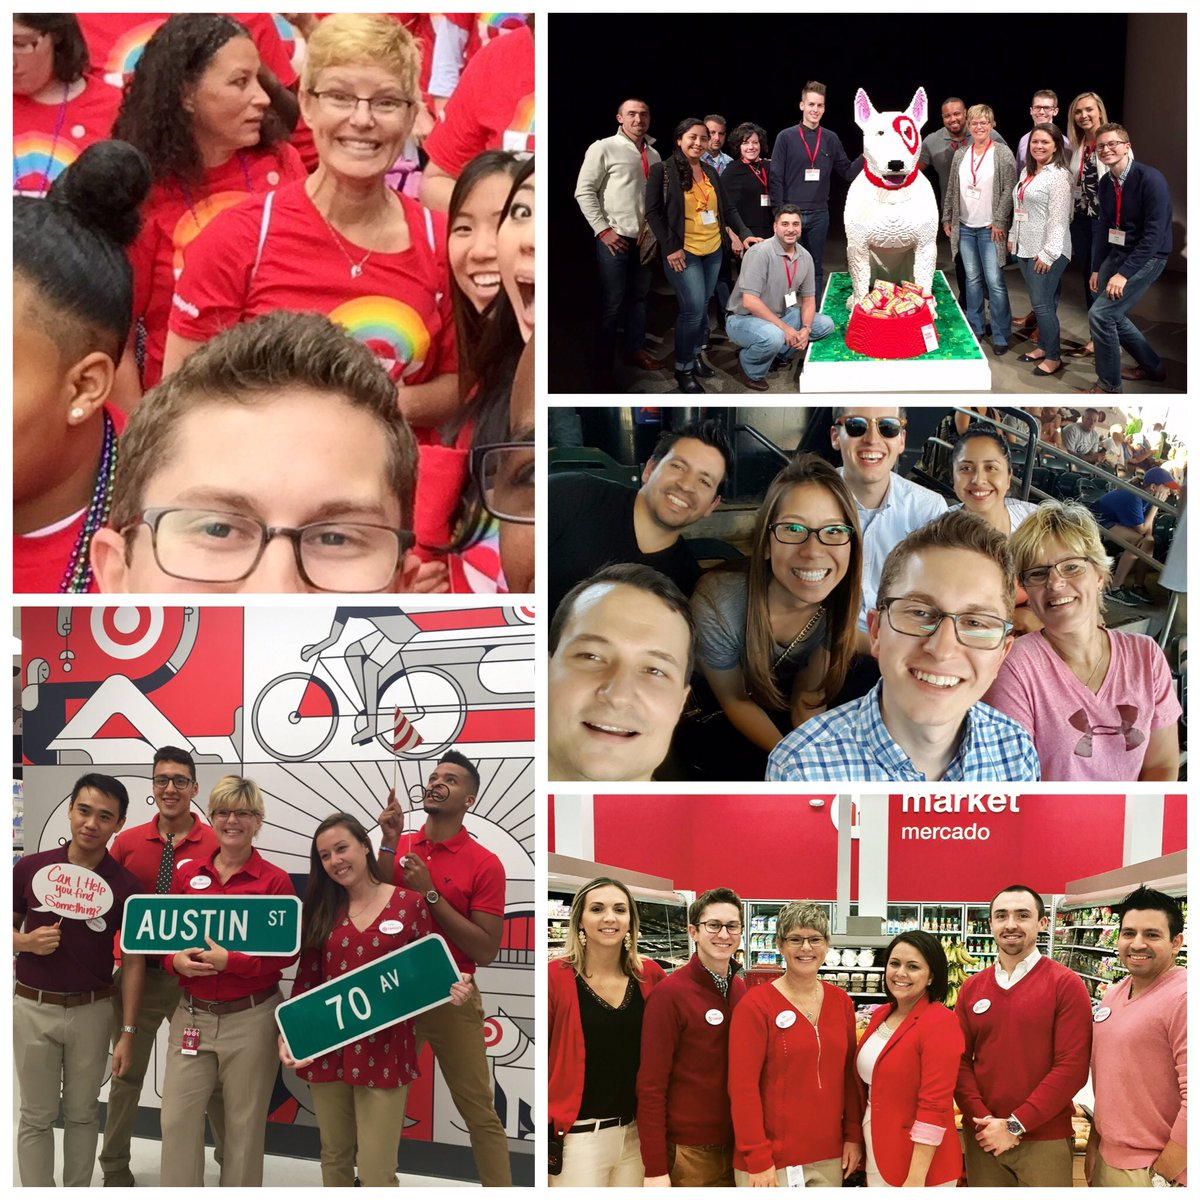 It&#39;s been an amazing run @nikitee94 - going to miss having you as my partner in crime! You&#39;re going to do amazing in D469! #Mom <br>http://pic.twitter.com/JVCfTMpRva